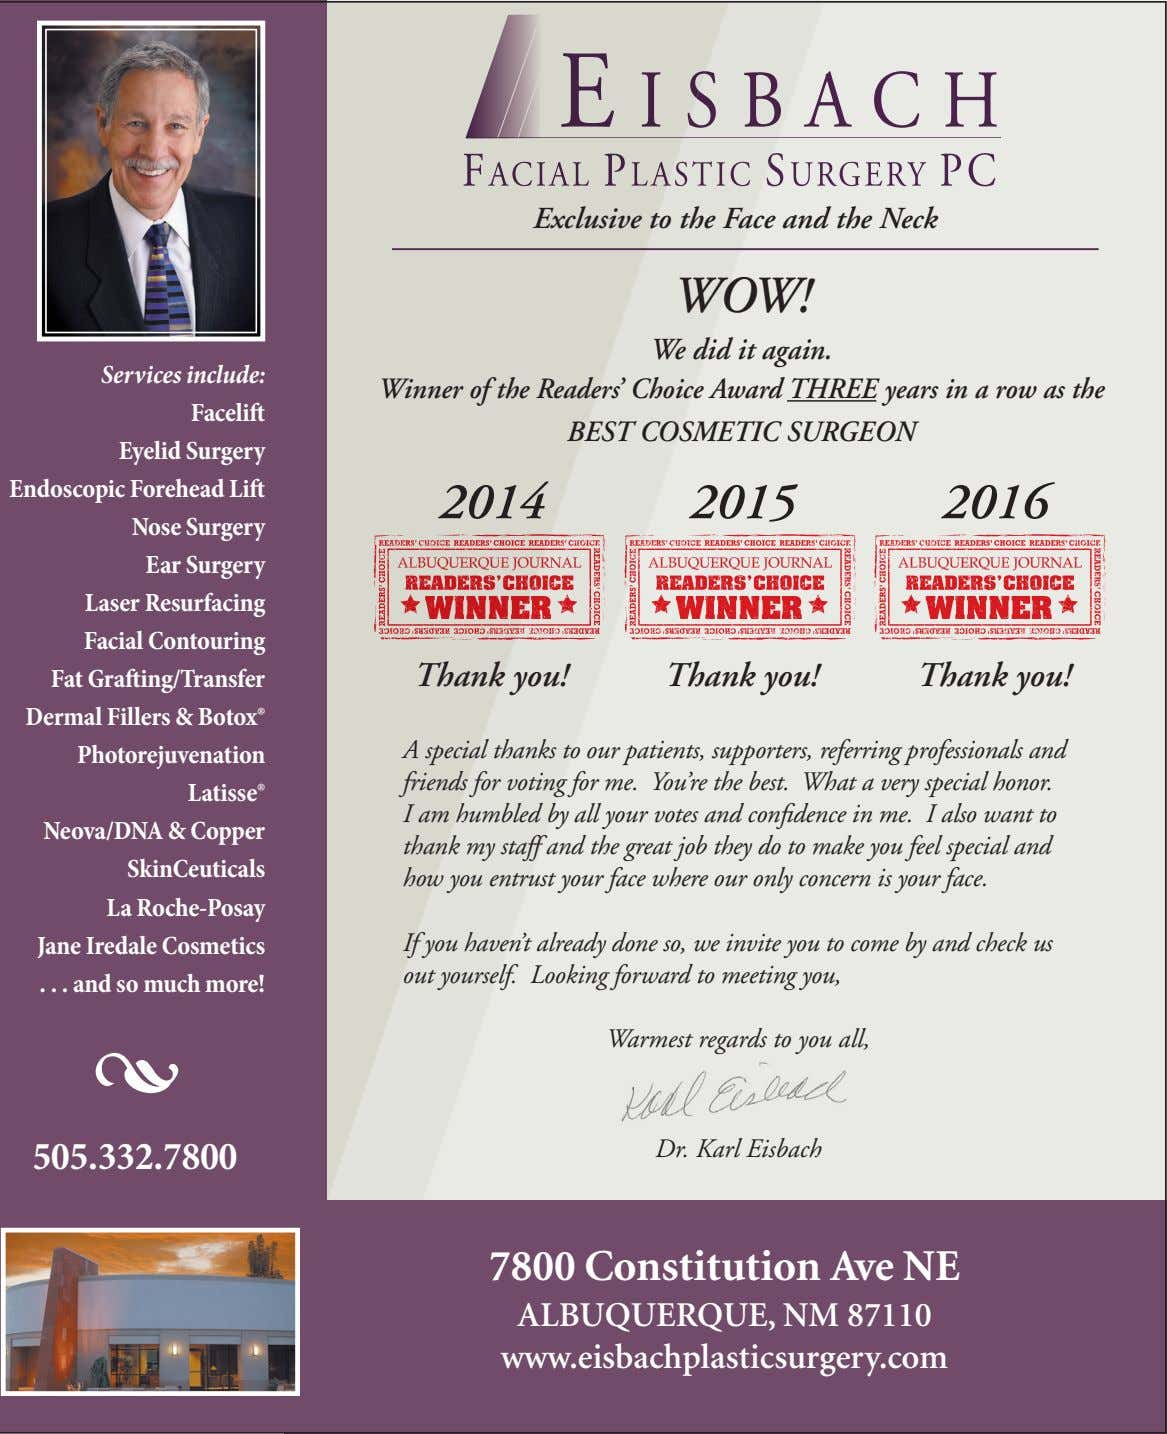 exclusive to the Face and the neck wow! we did it again. Services include: Facelift